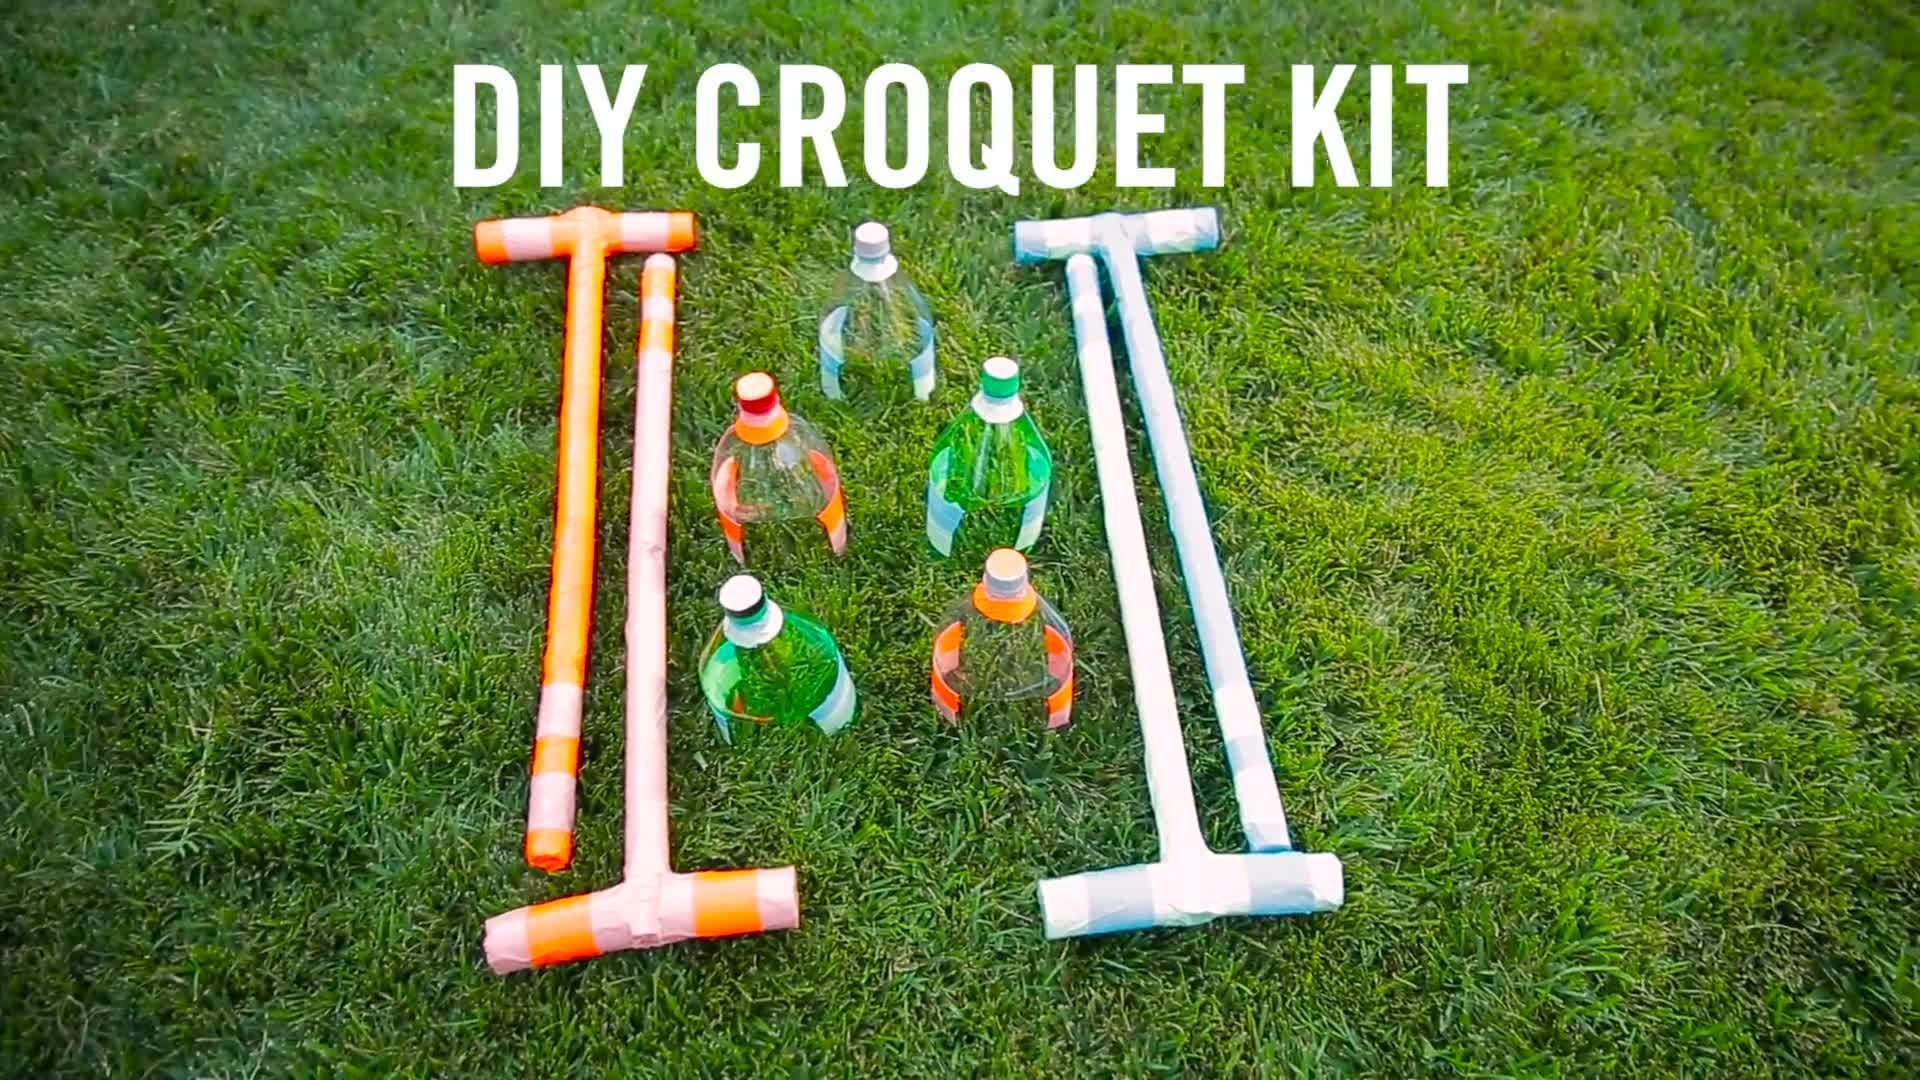 Disney DIY Croquet Kit